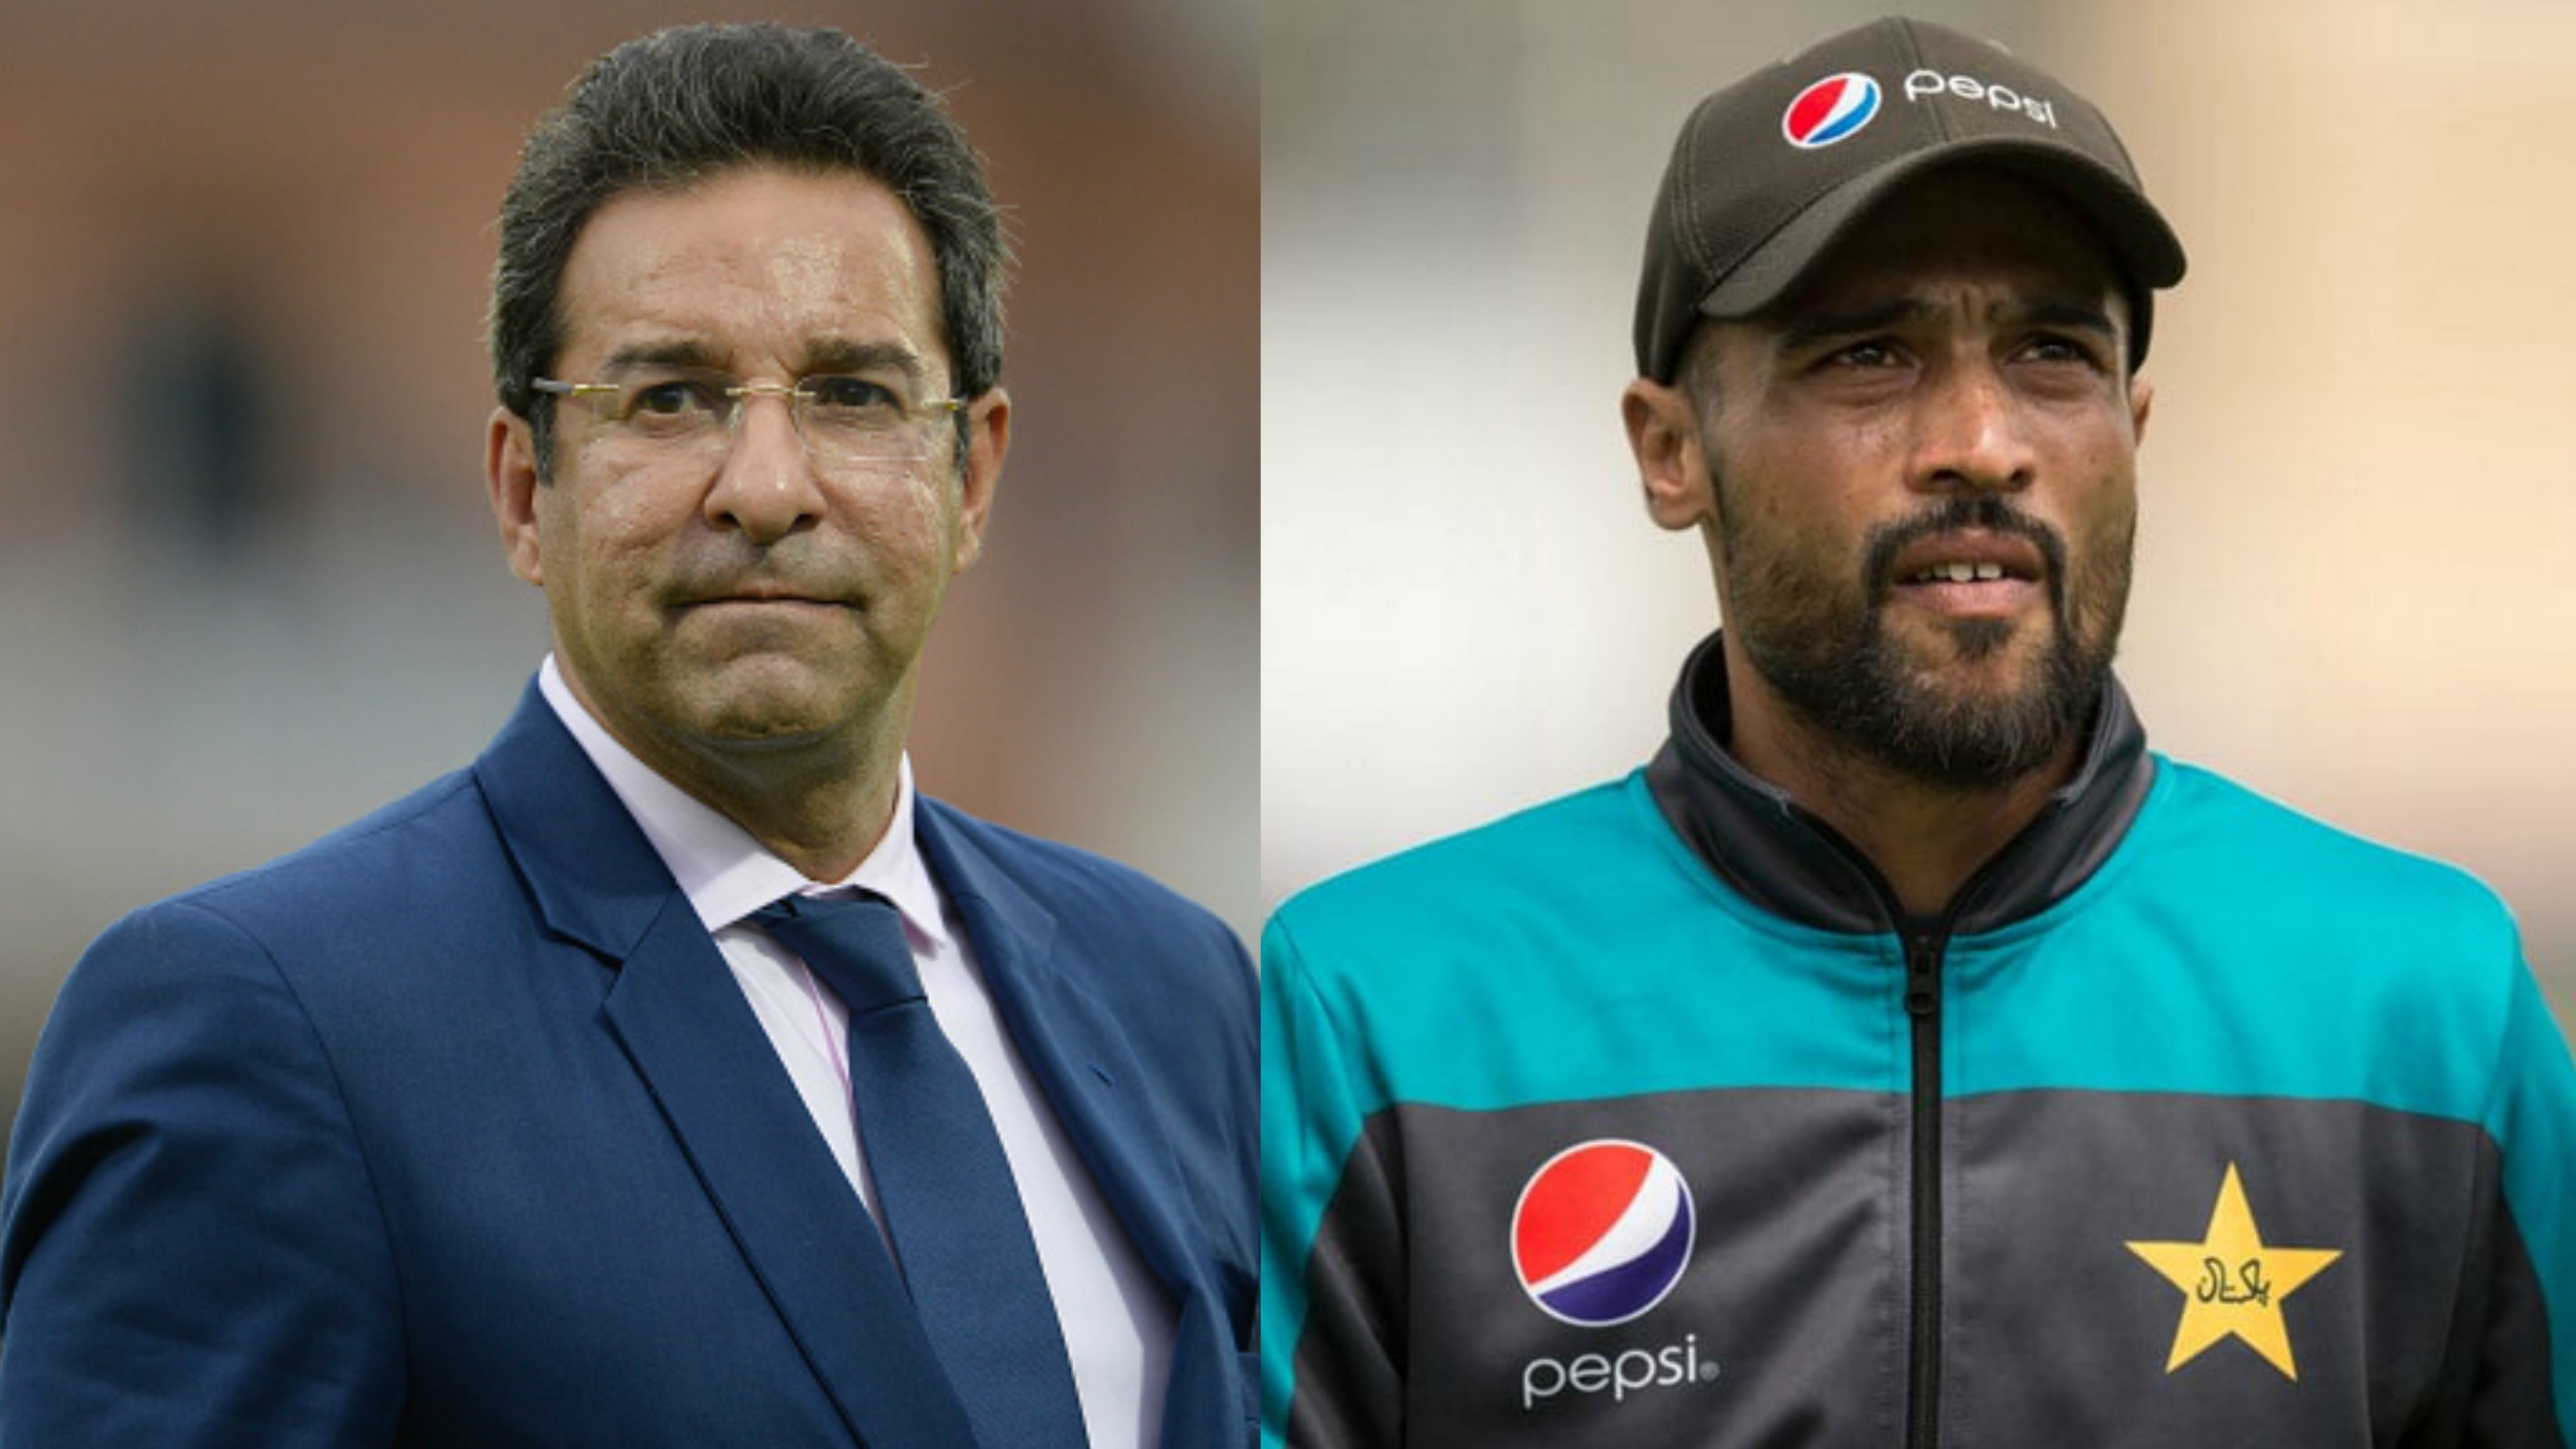 PAK v BAN 2020: Wasim Akram slams PCB's decision to drop Mohammad Amir for Bangladesh T20Is